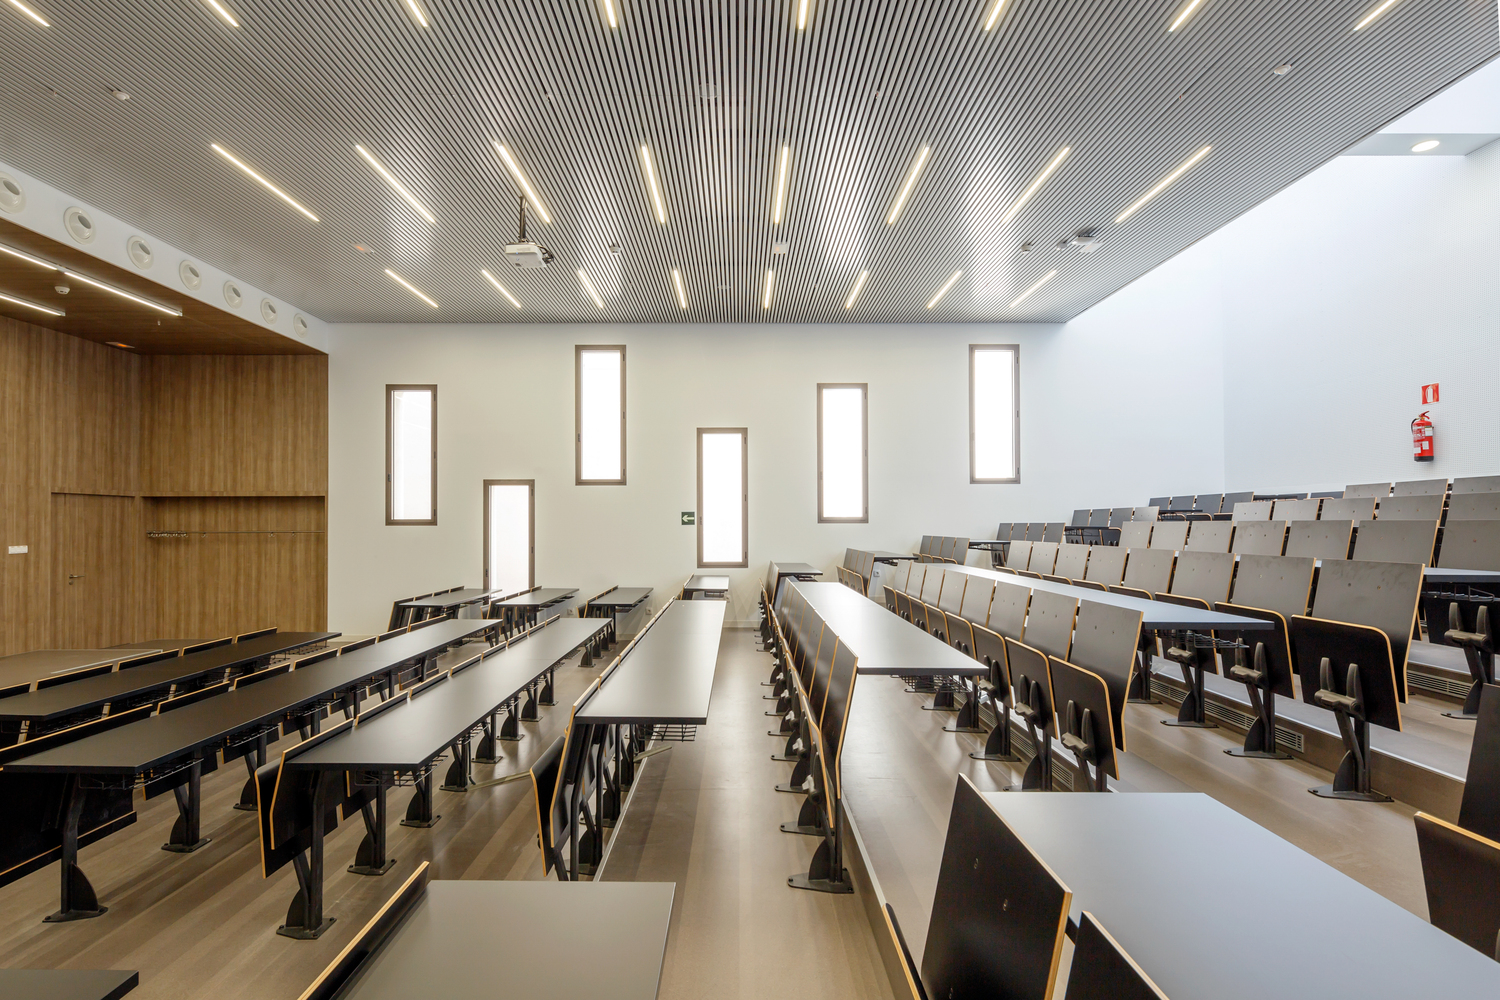 Classroom Lighting Design : Considering led lighting for classrooms brighter